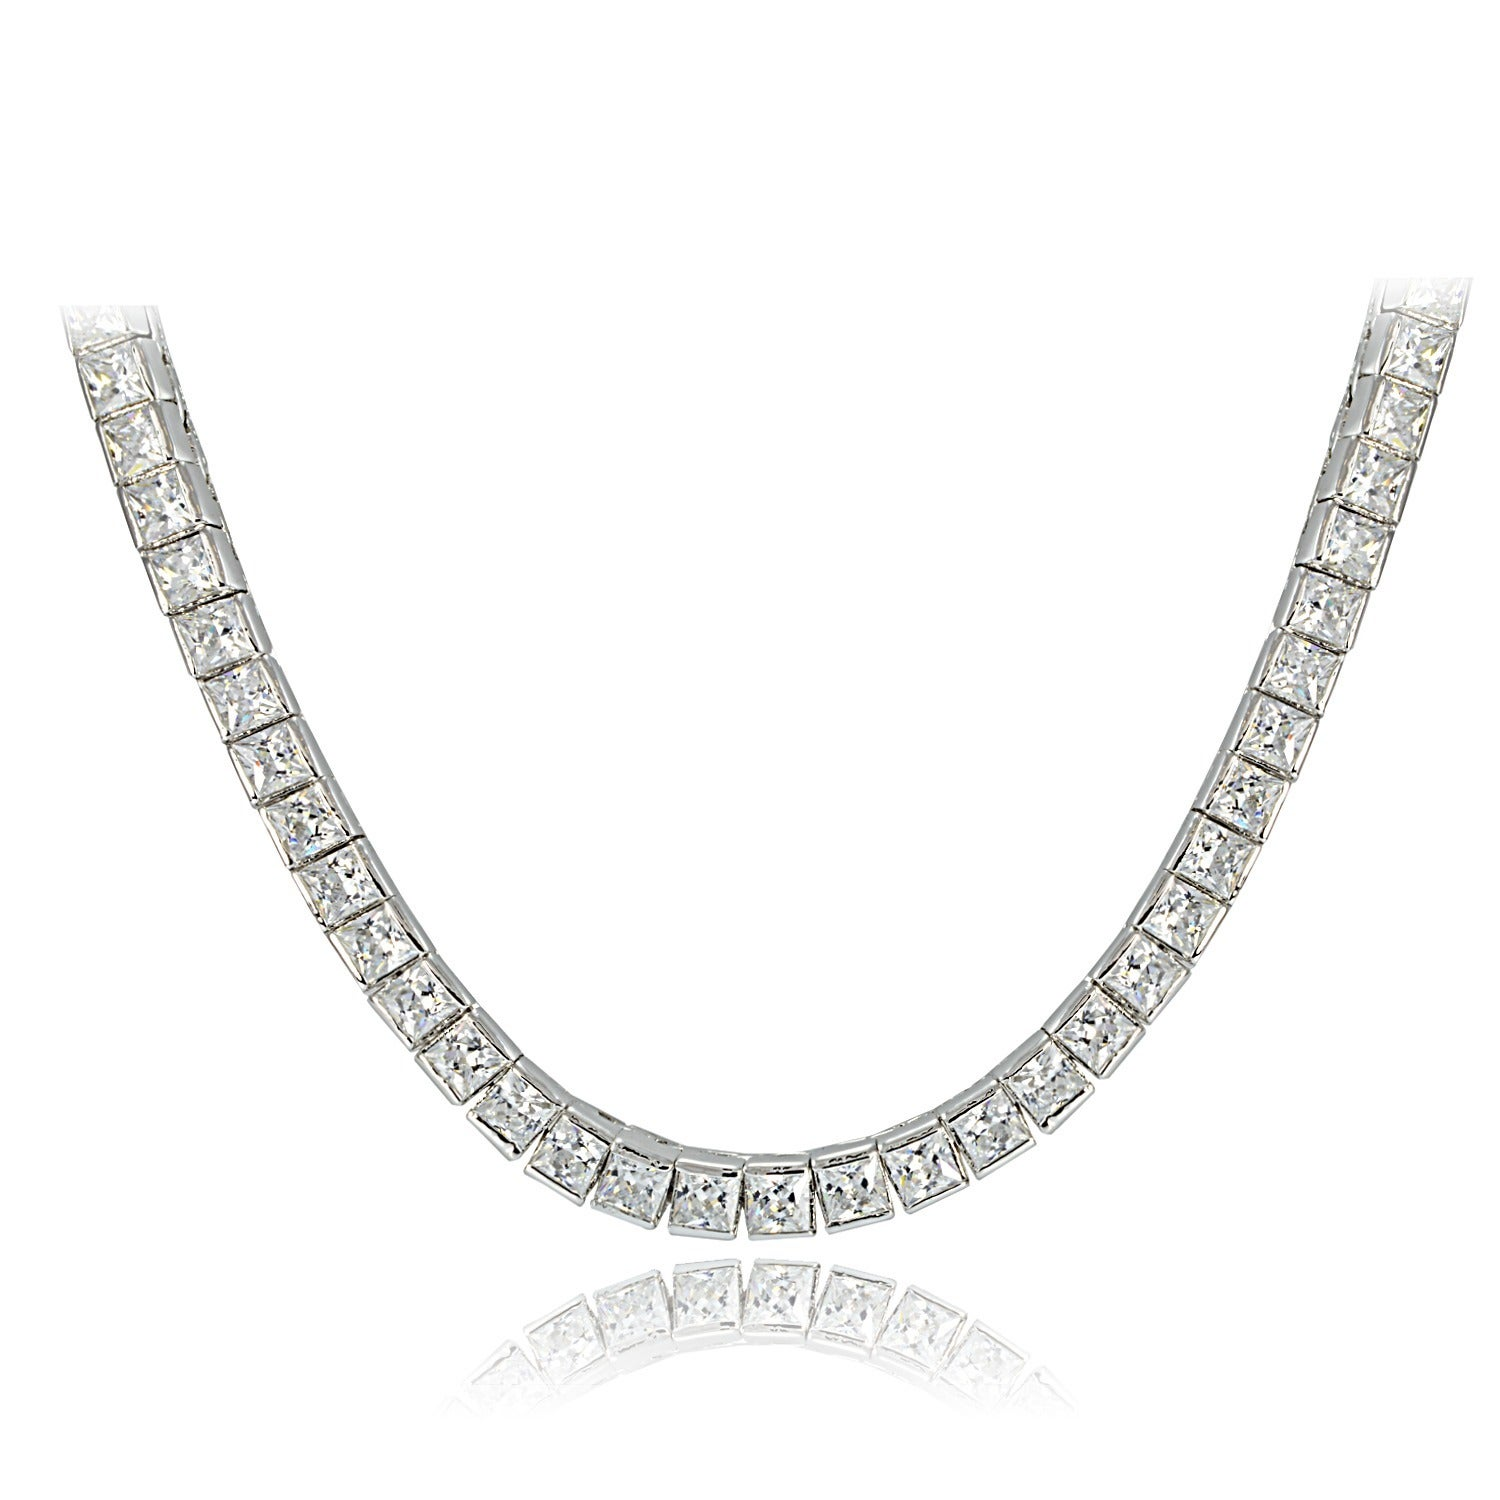 pendant solitaire products princess necklace in gold mirabess diamond bail white pendent double cut